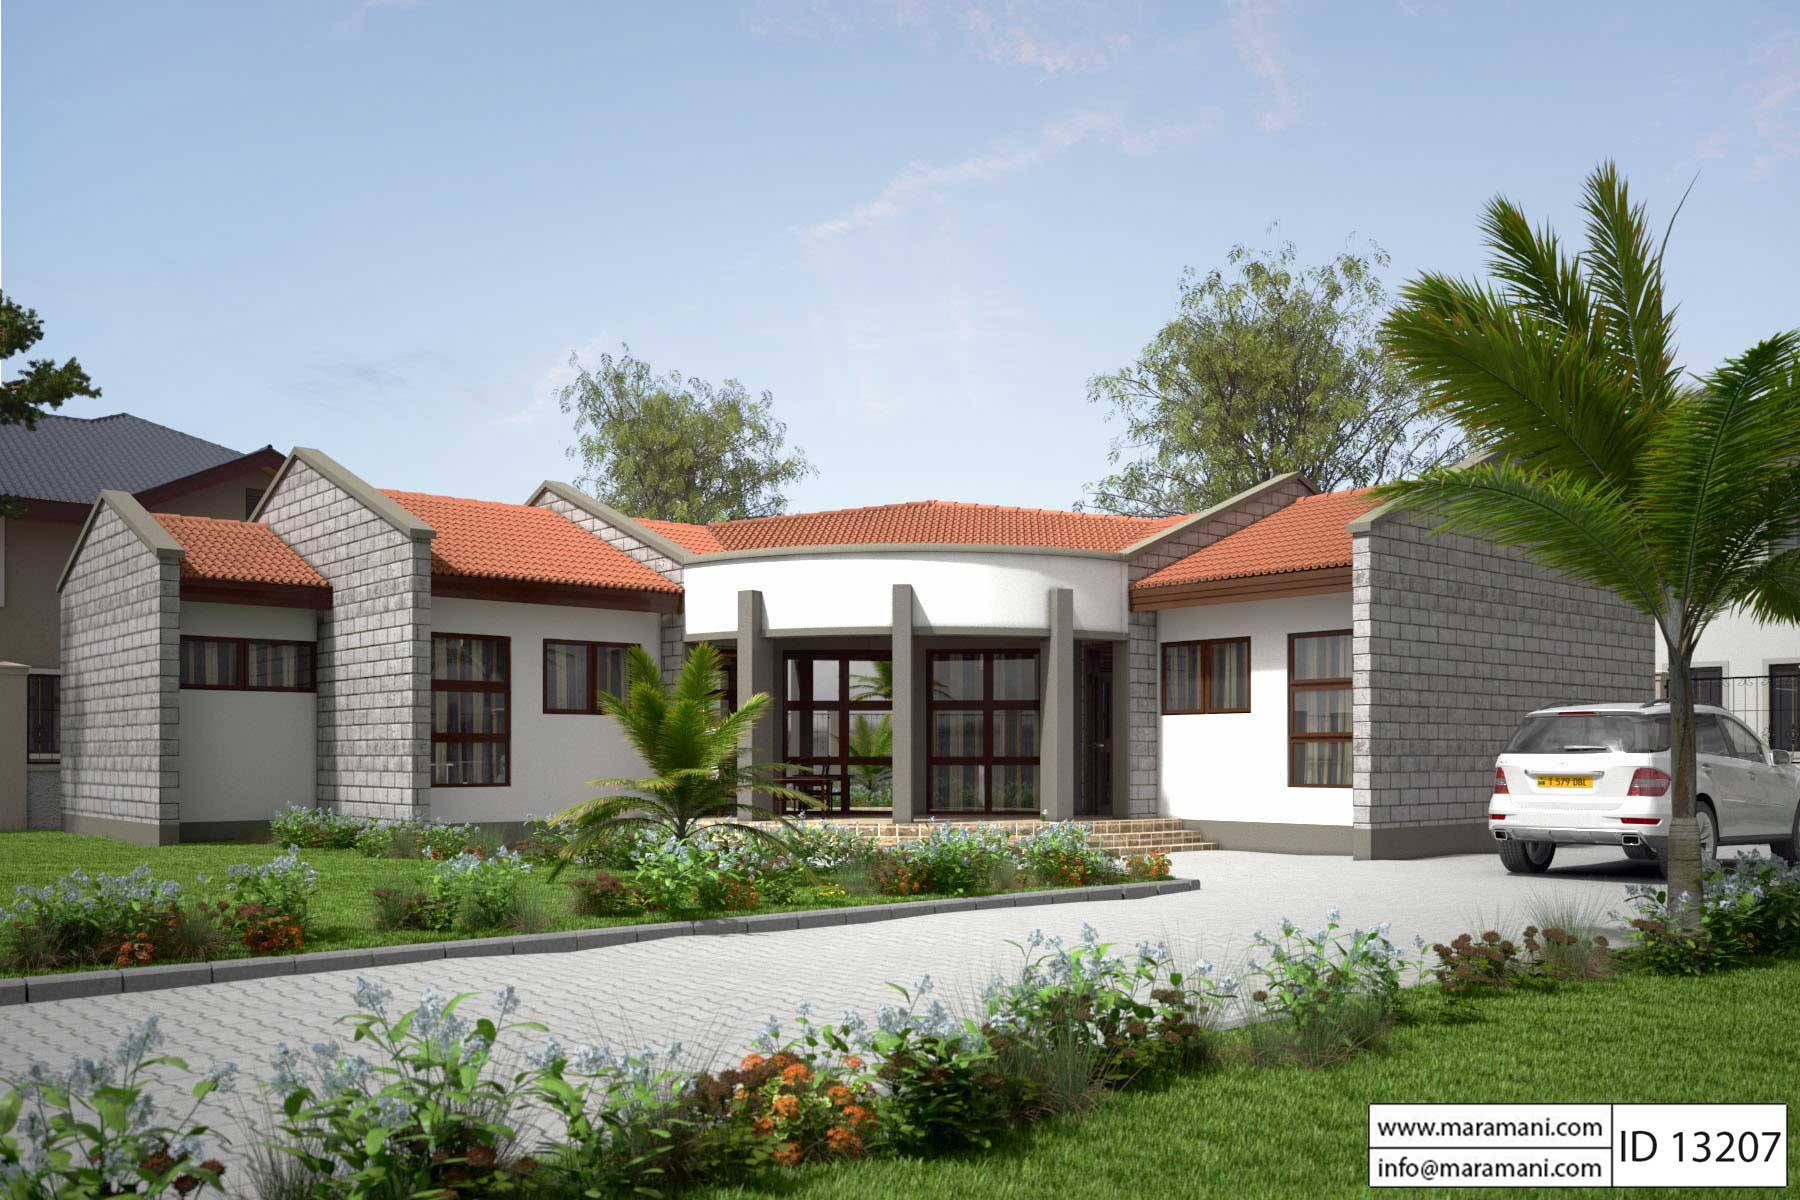 Low budget modern 3 bedroom house design id 13207 plans by maramani